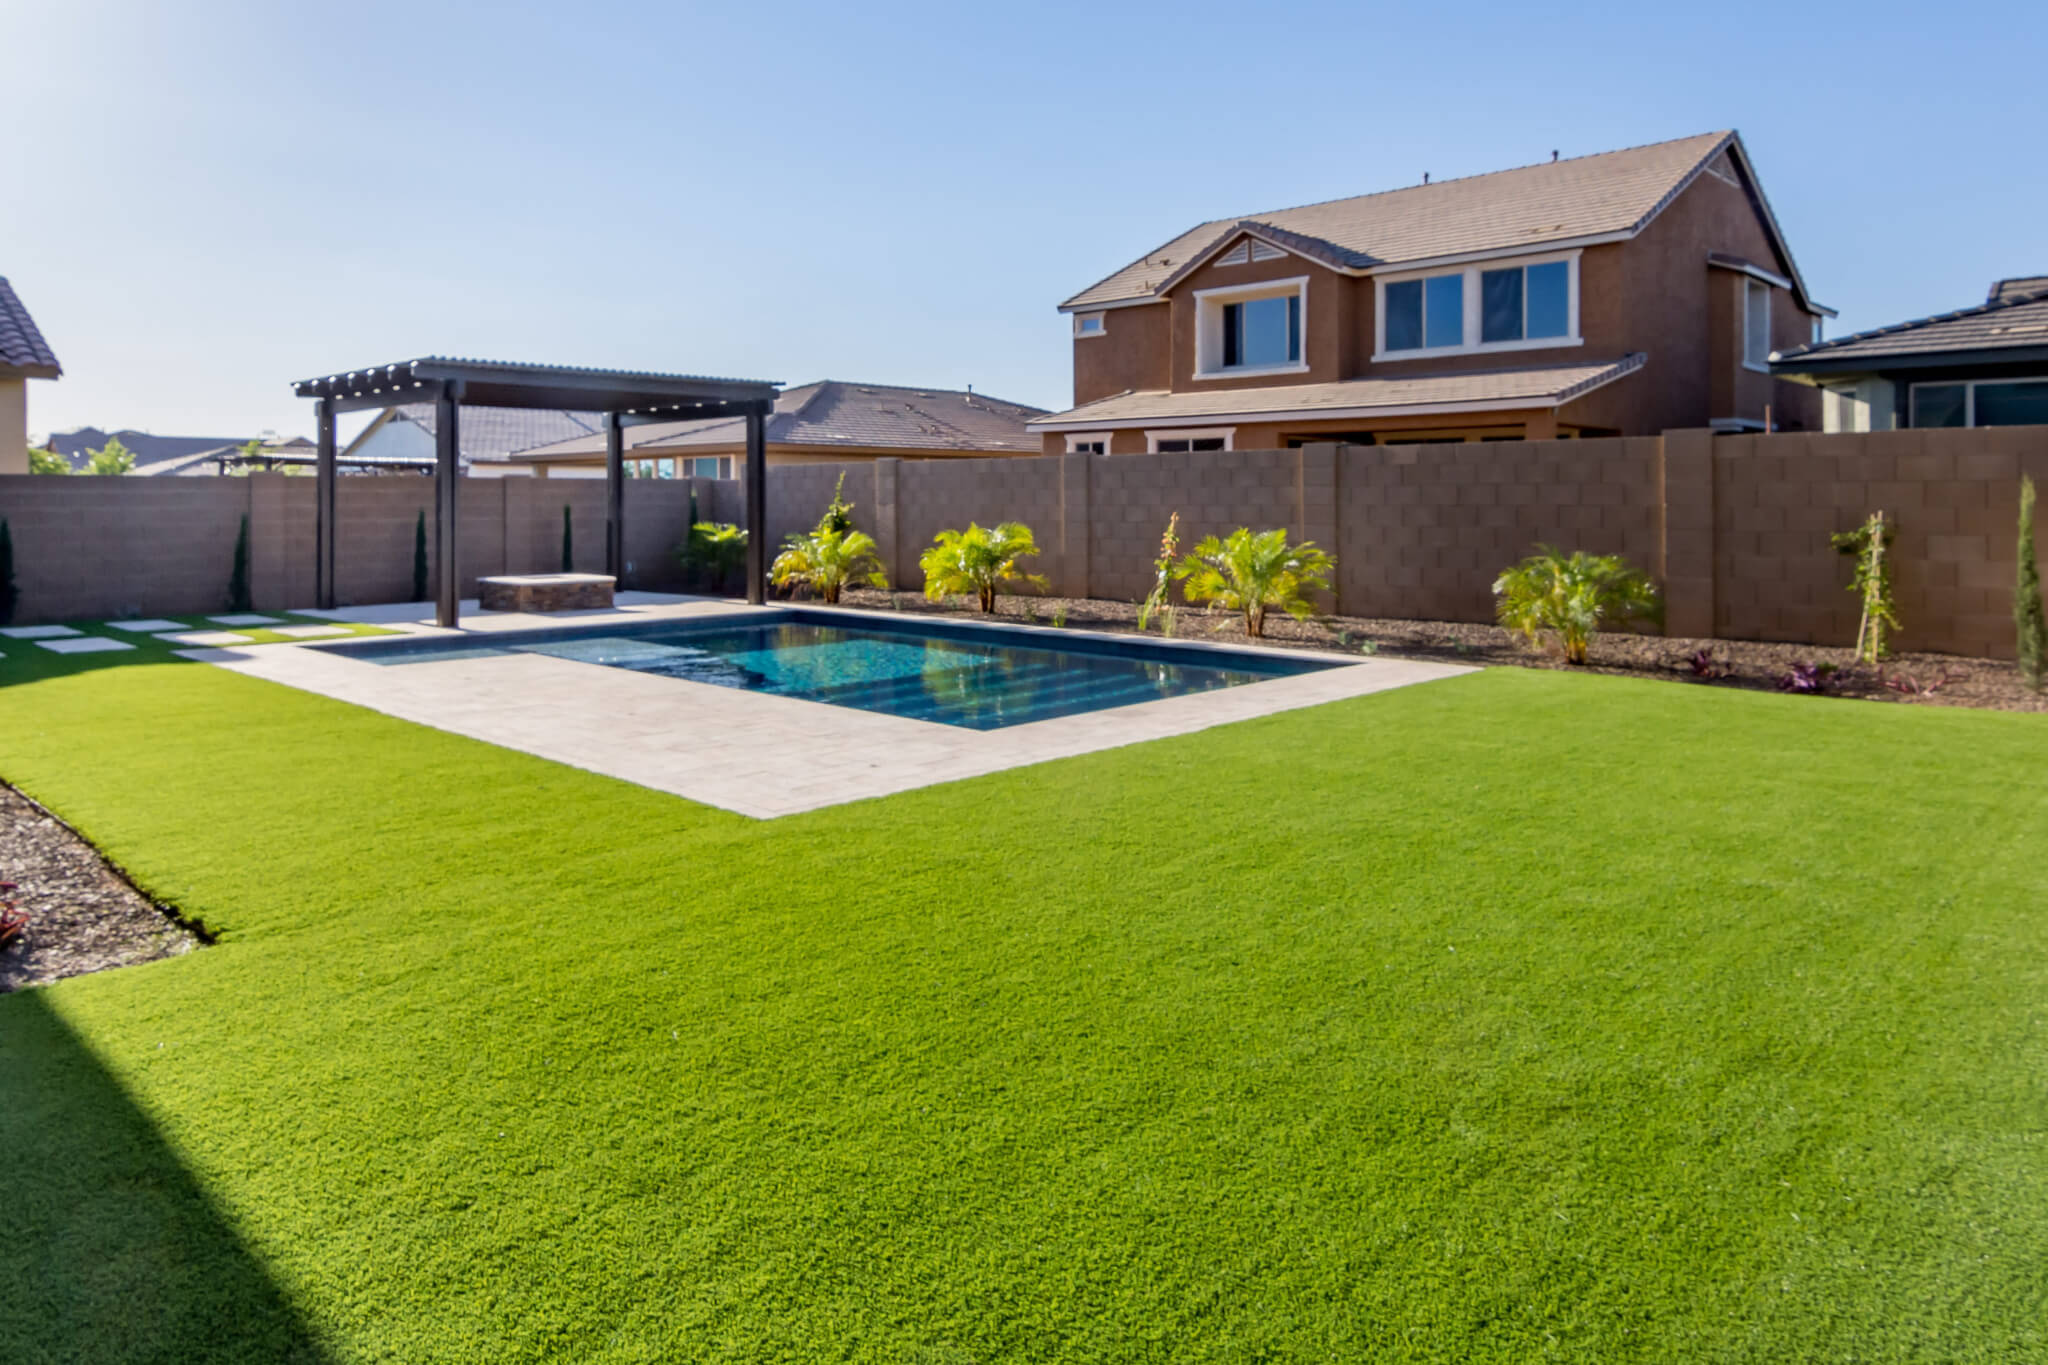 3 Arizona Landscape Design Ideas To Transform Your Yard New Image